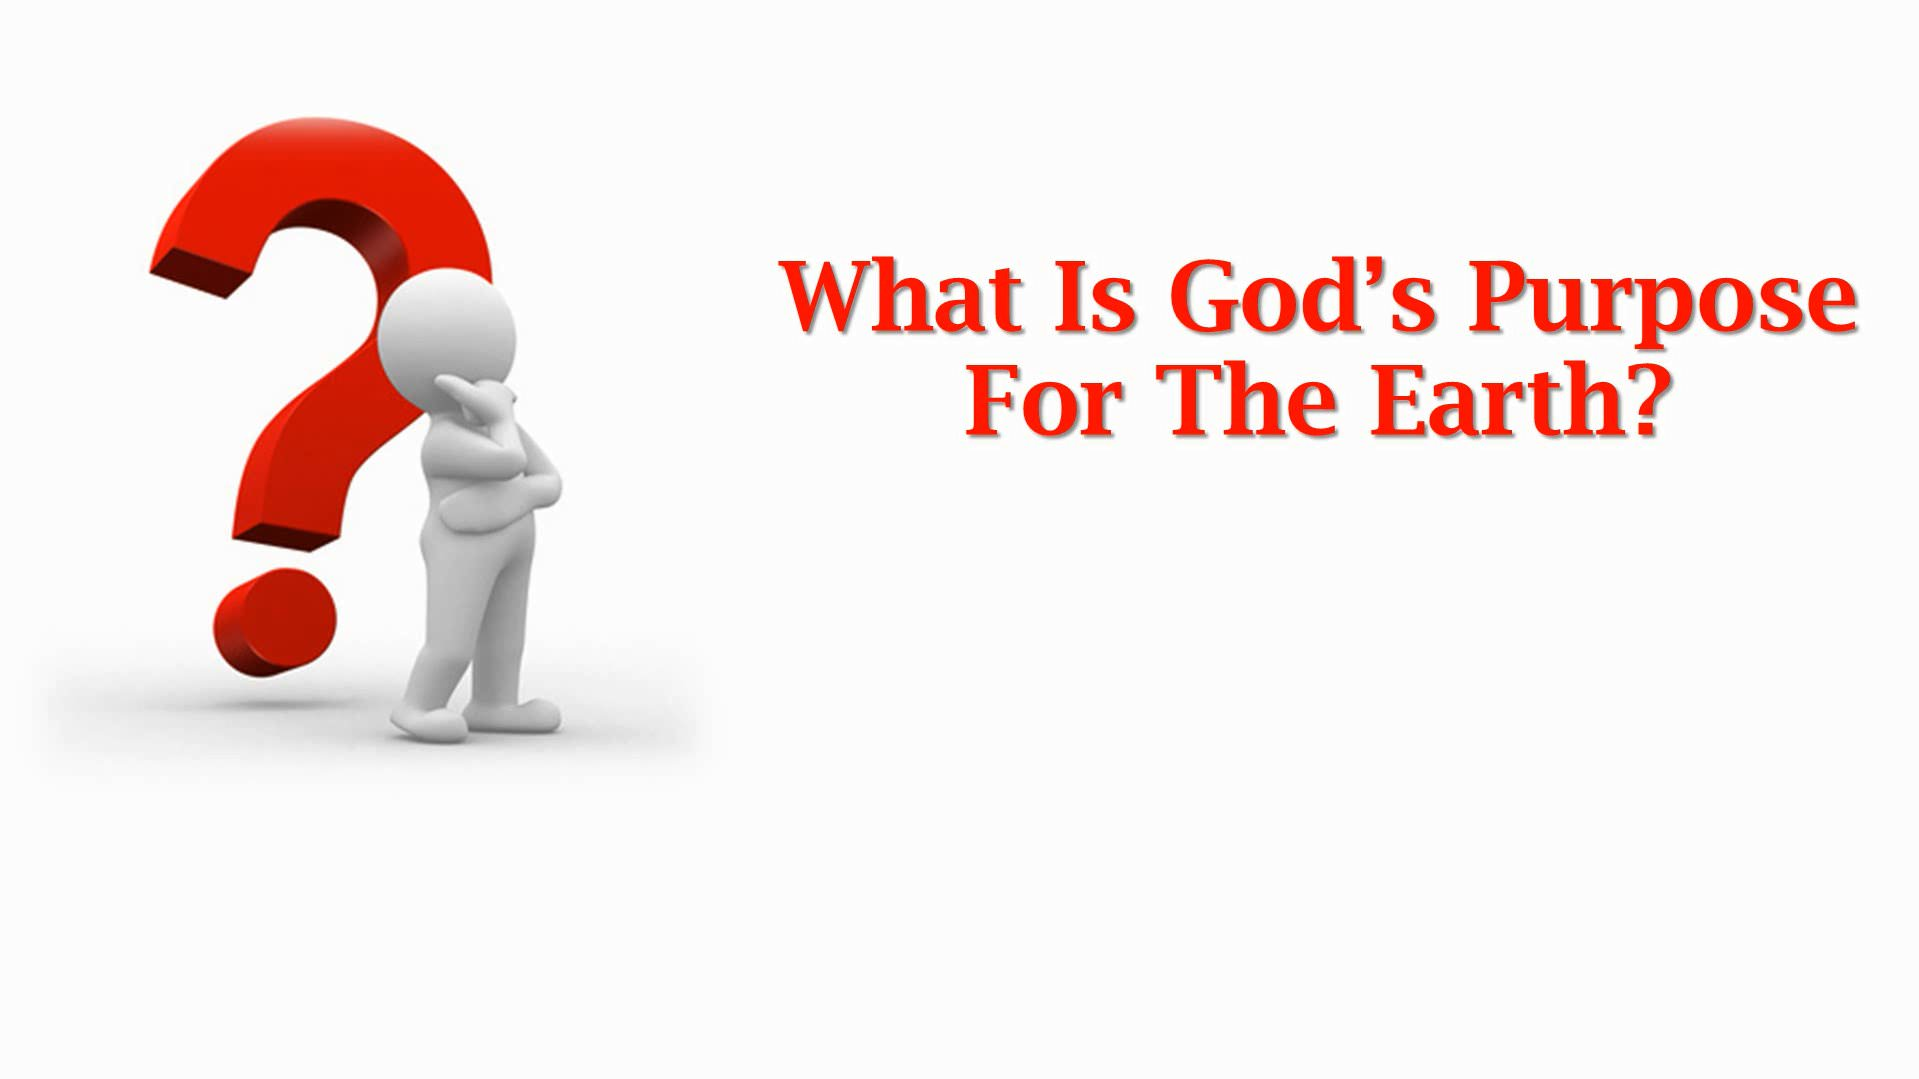 What Is God's Purpose For The Earth?